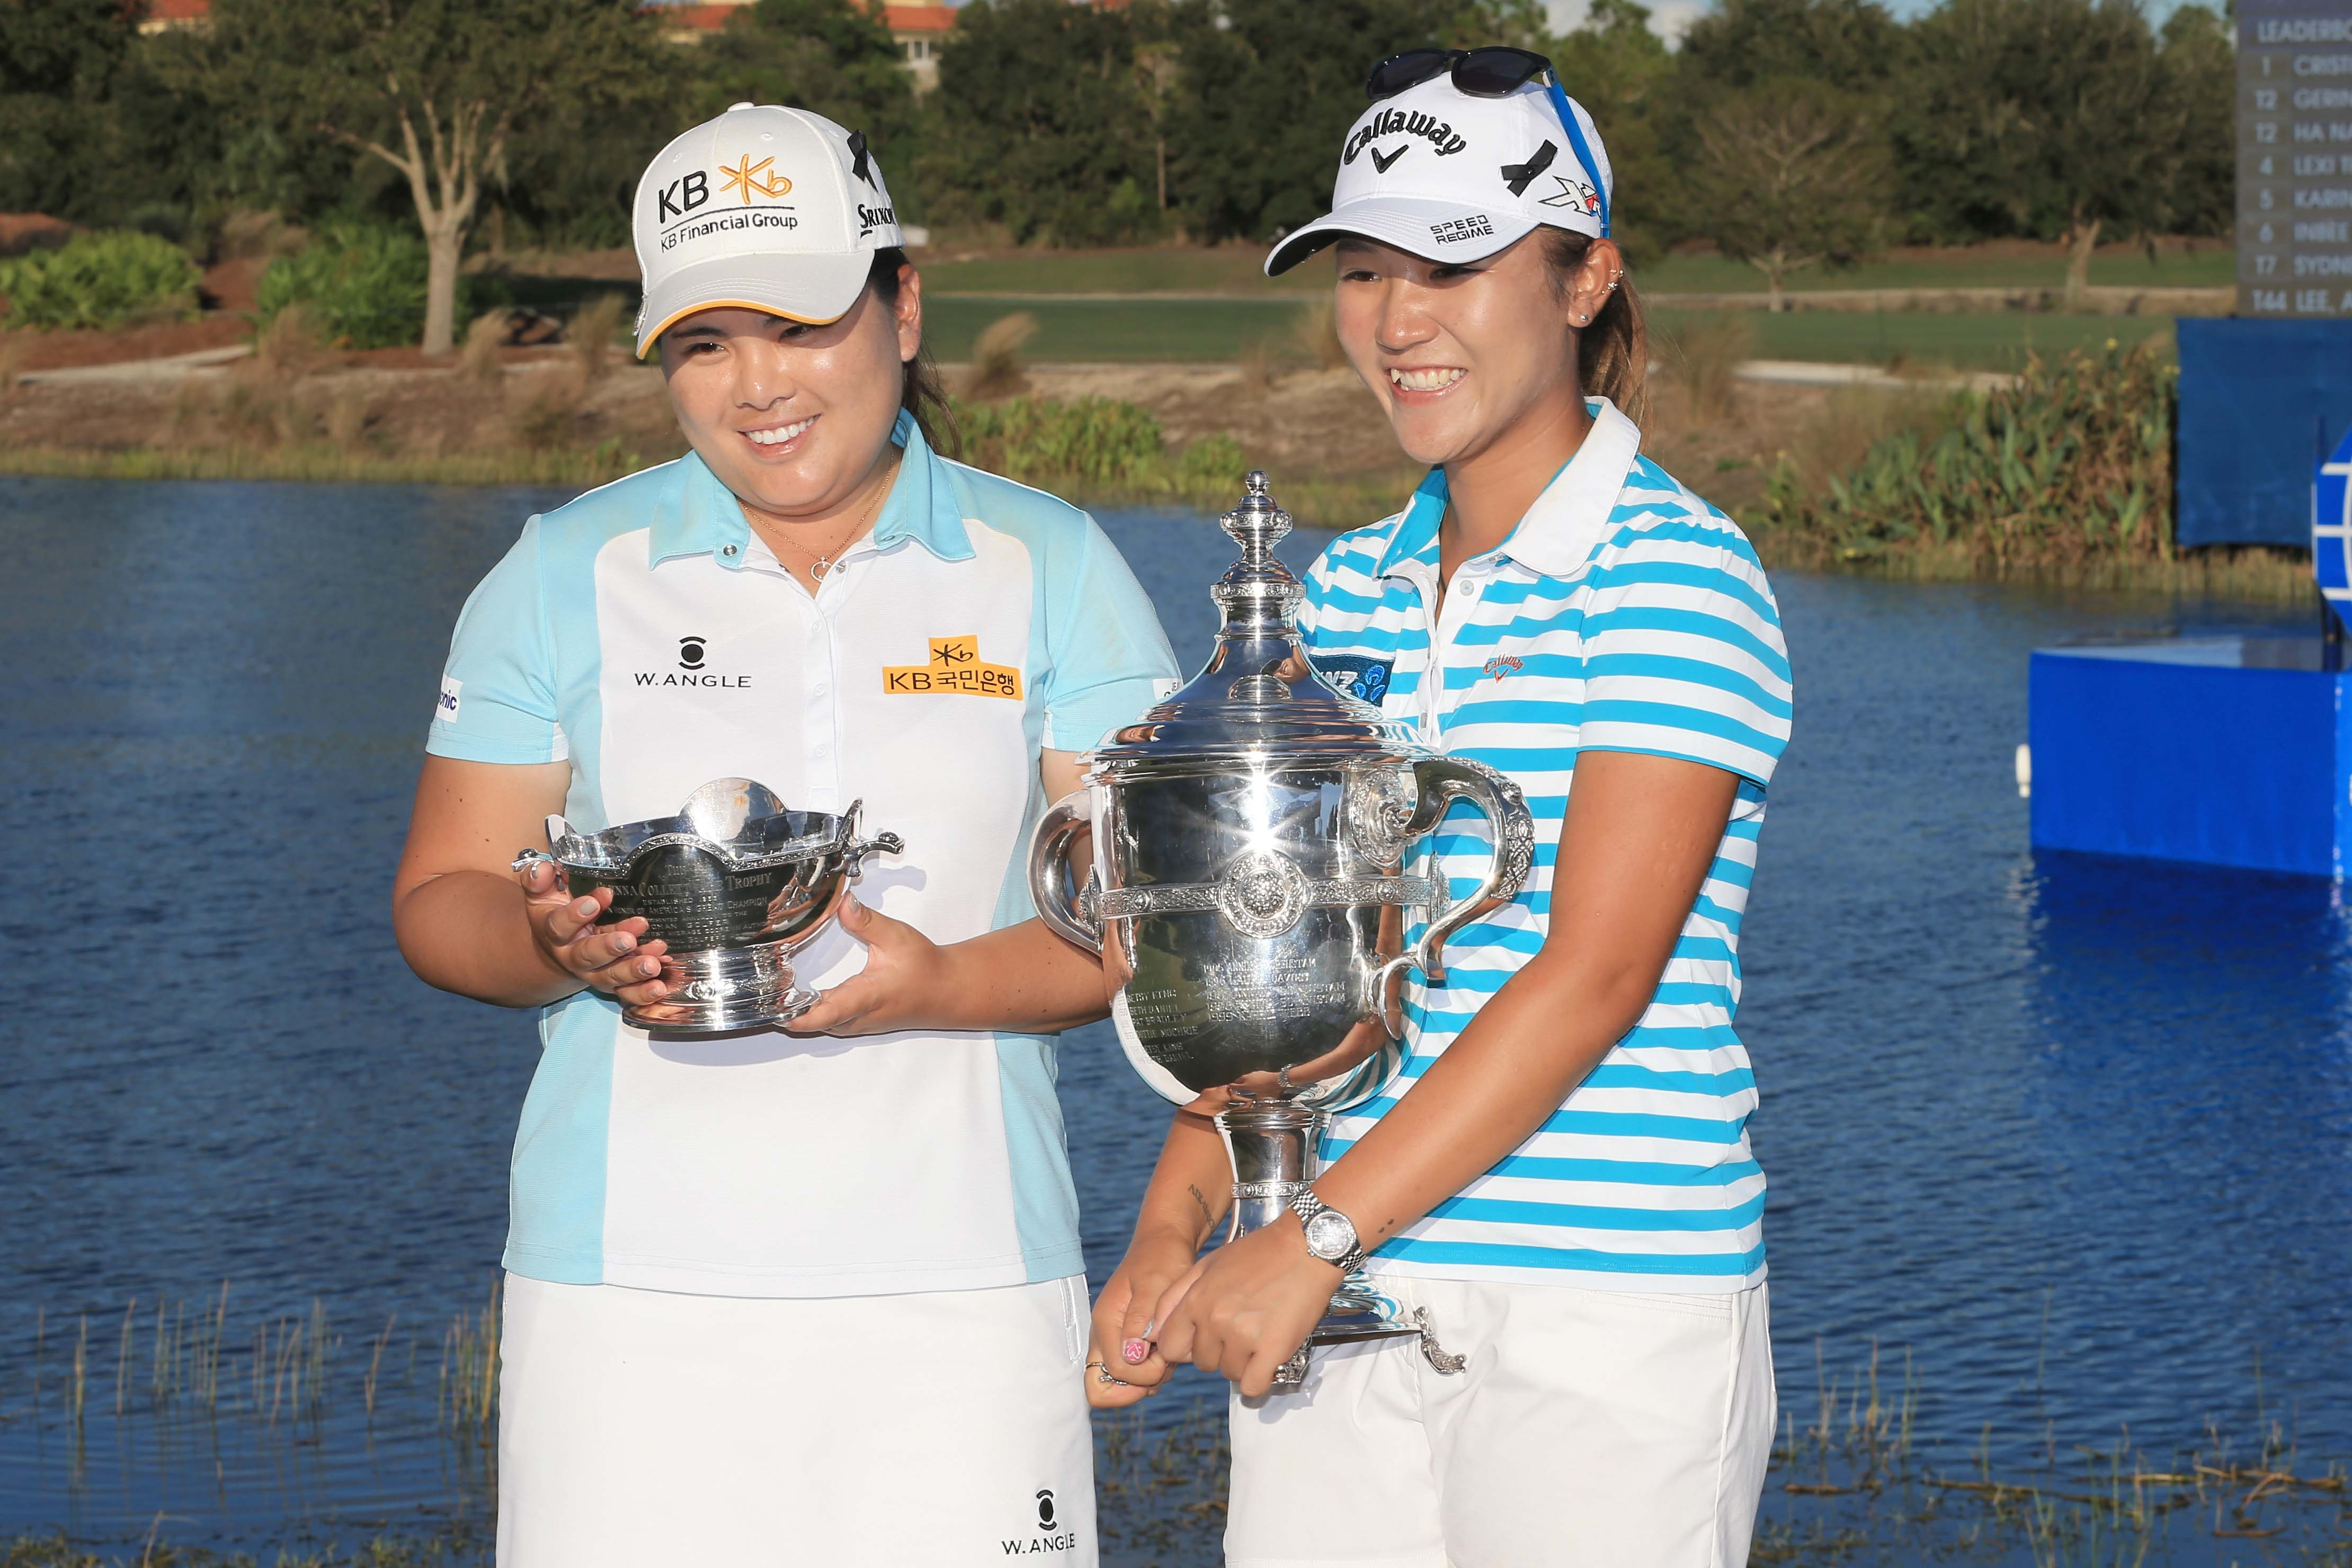 Inbee Park and Lydia Ko